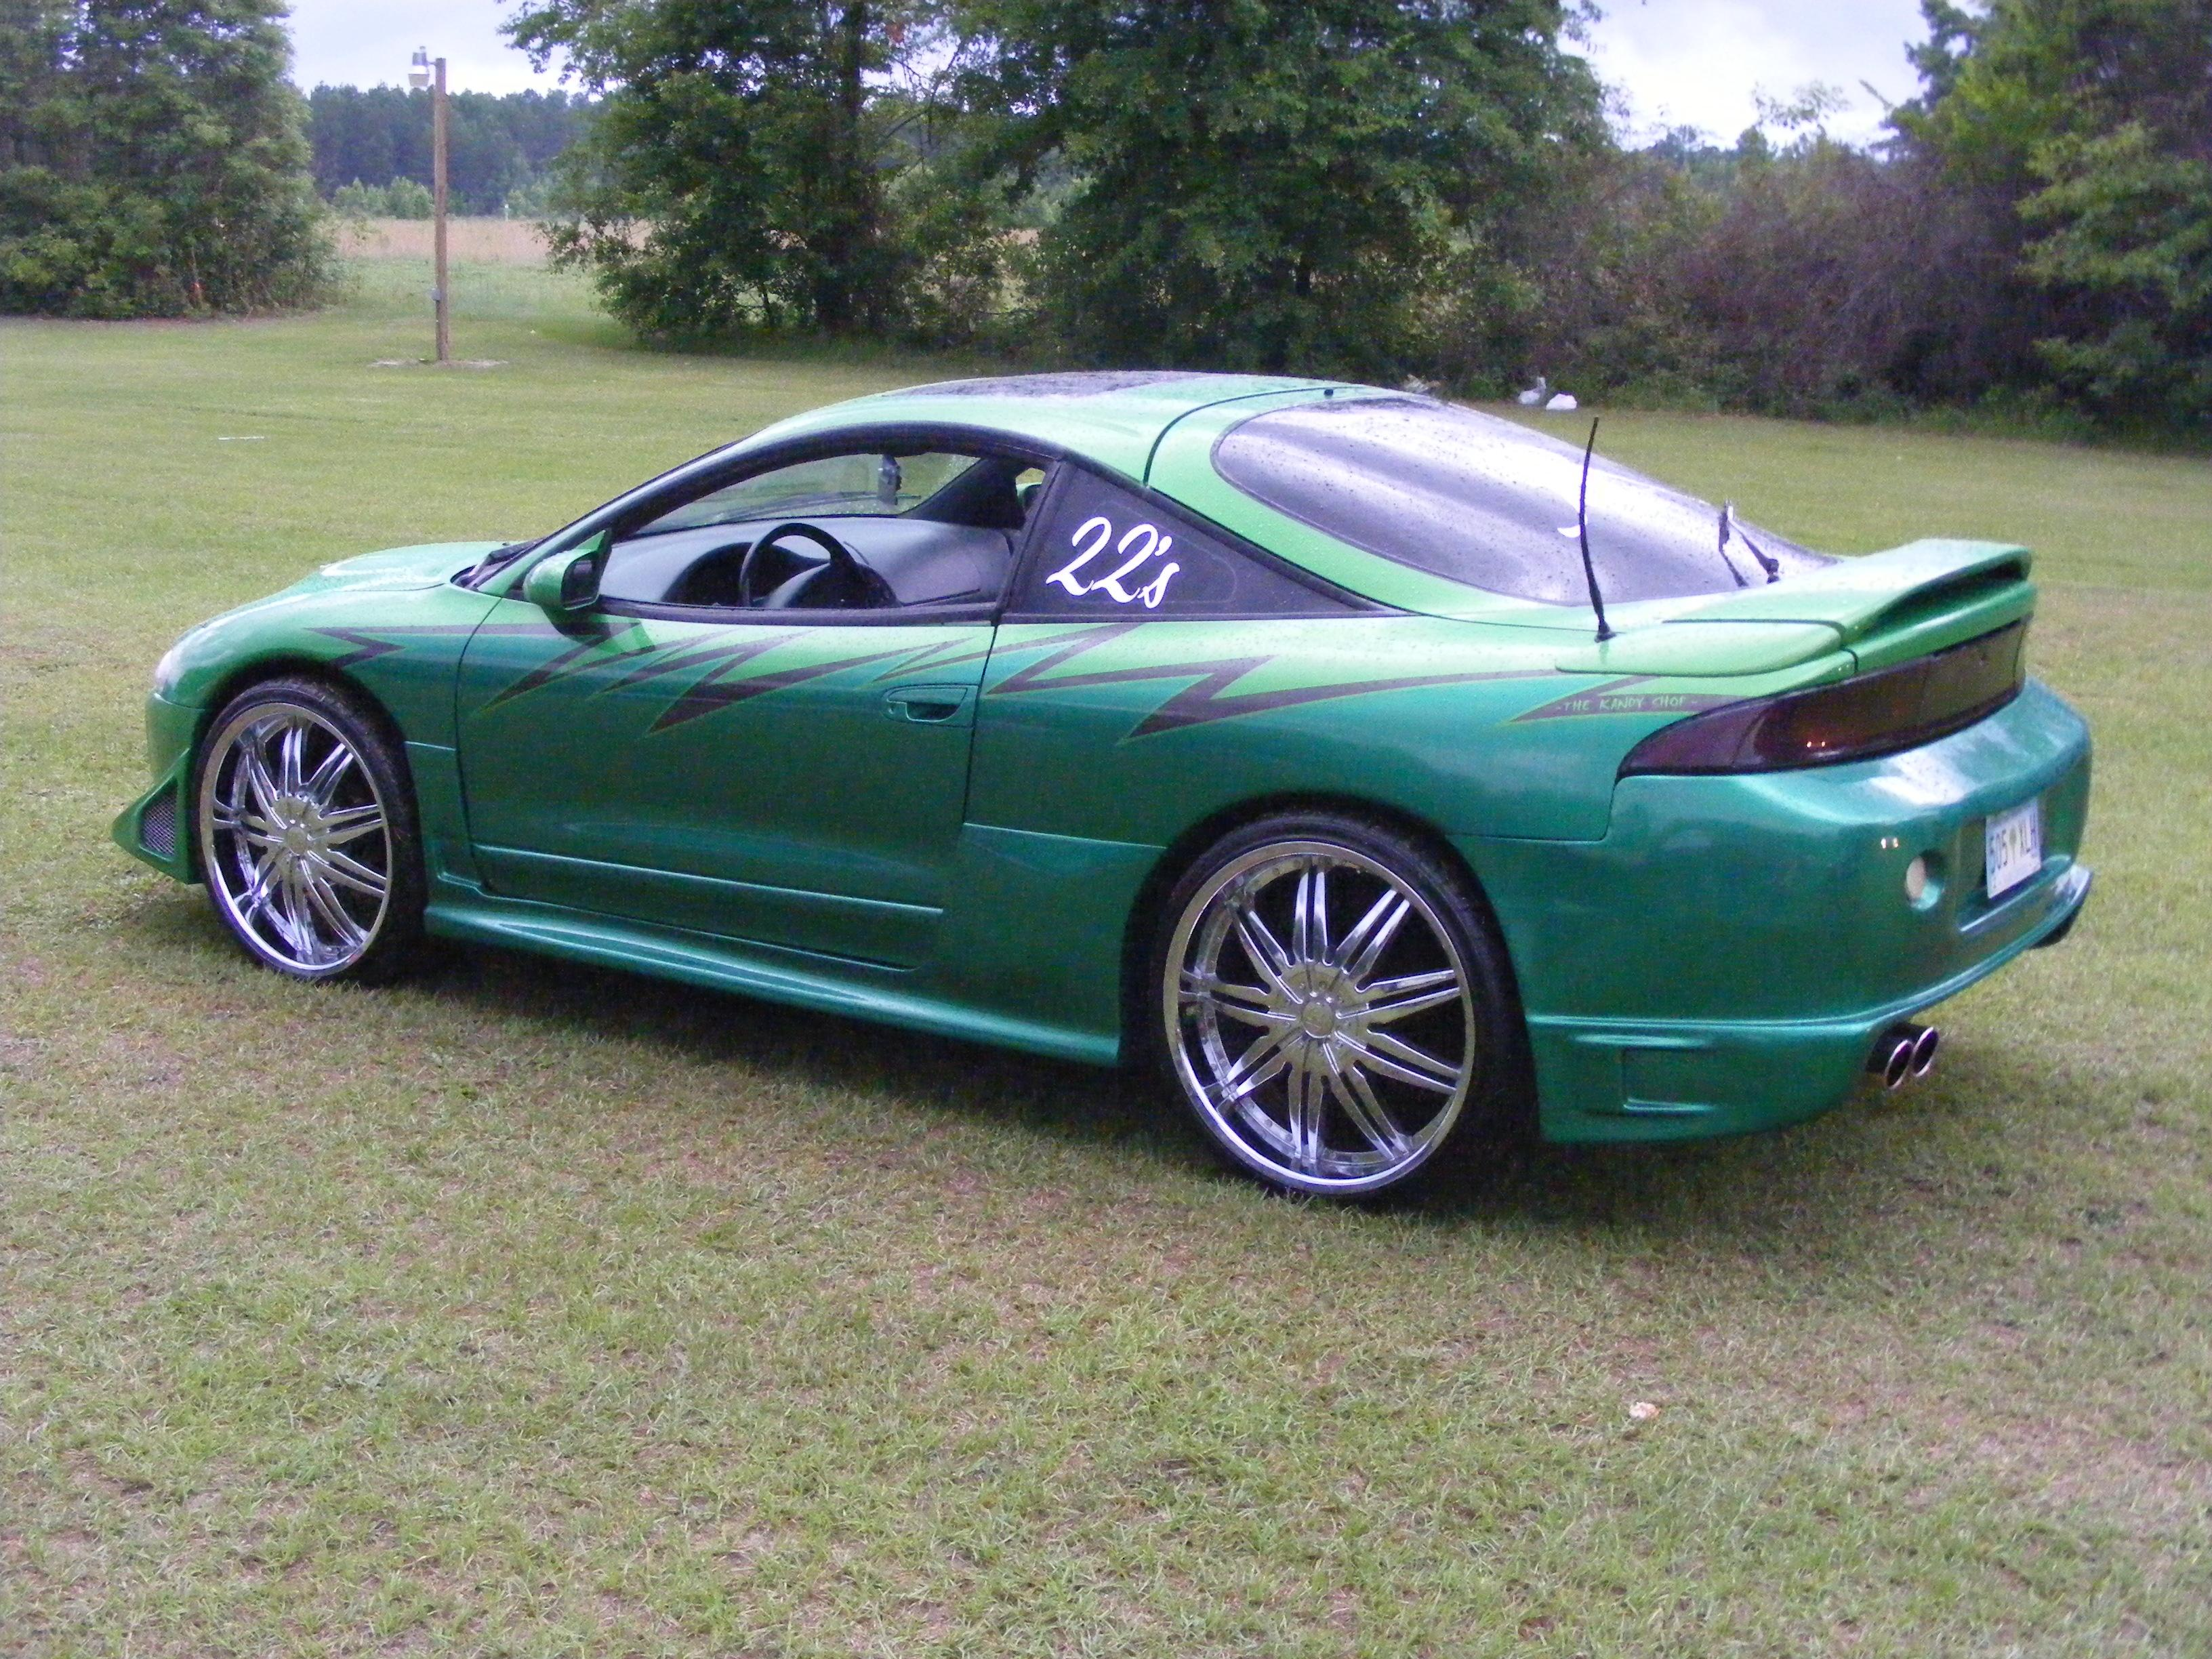 registered century bomber of page radar online eclipse as b buyers on screens america a most for cars mitsubishi s car college sale stealth about the well